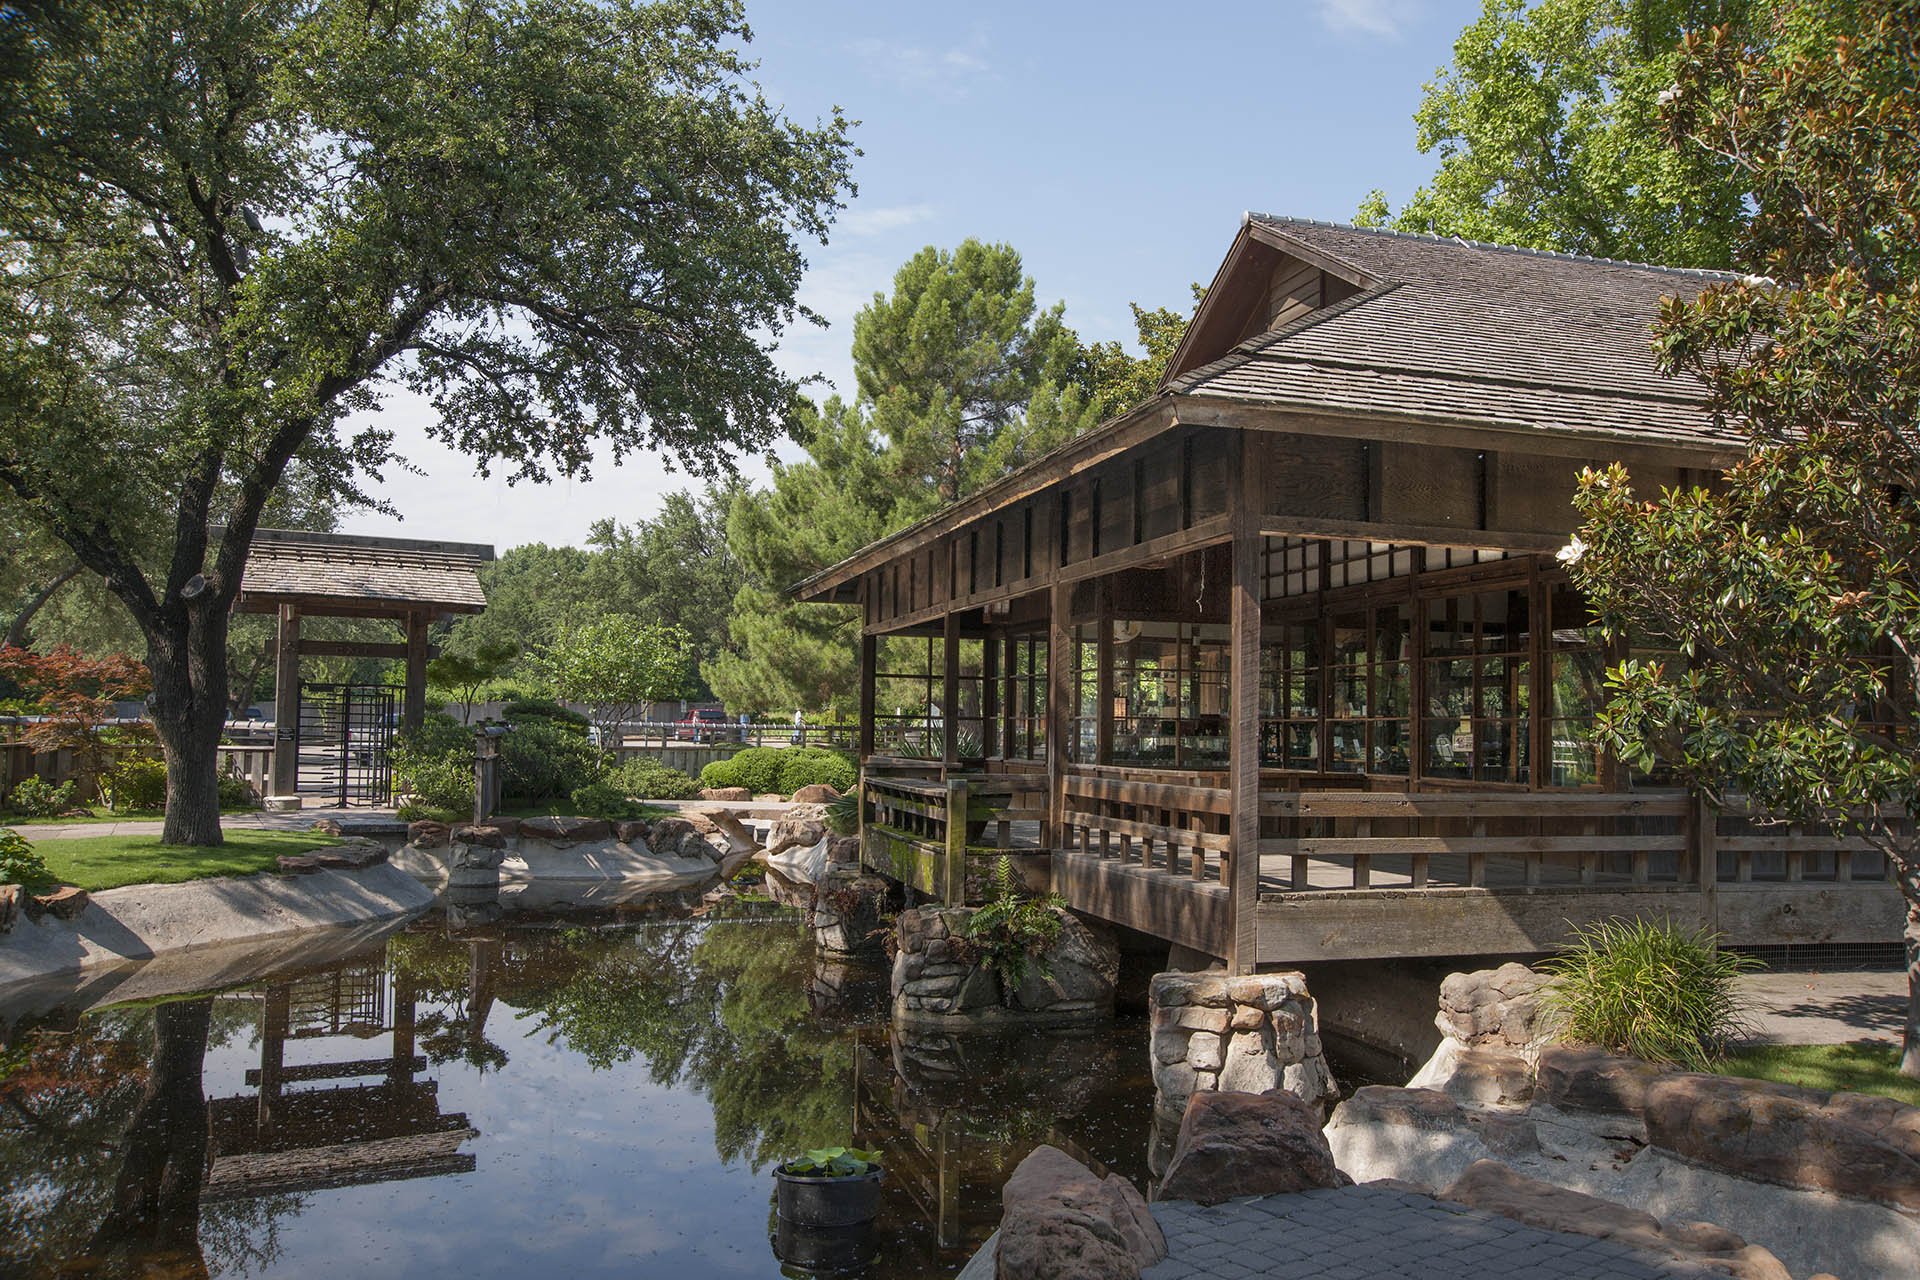 Fort worth garden should be seen every season u s for Fish store fort worth